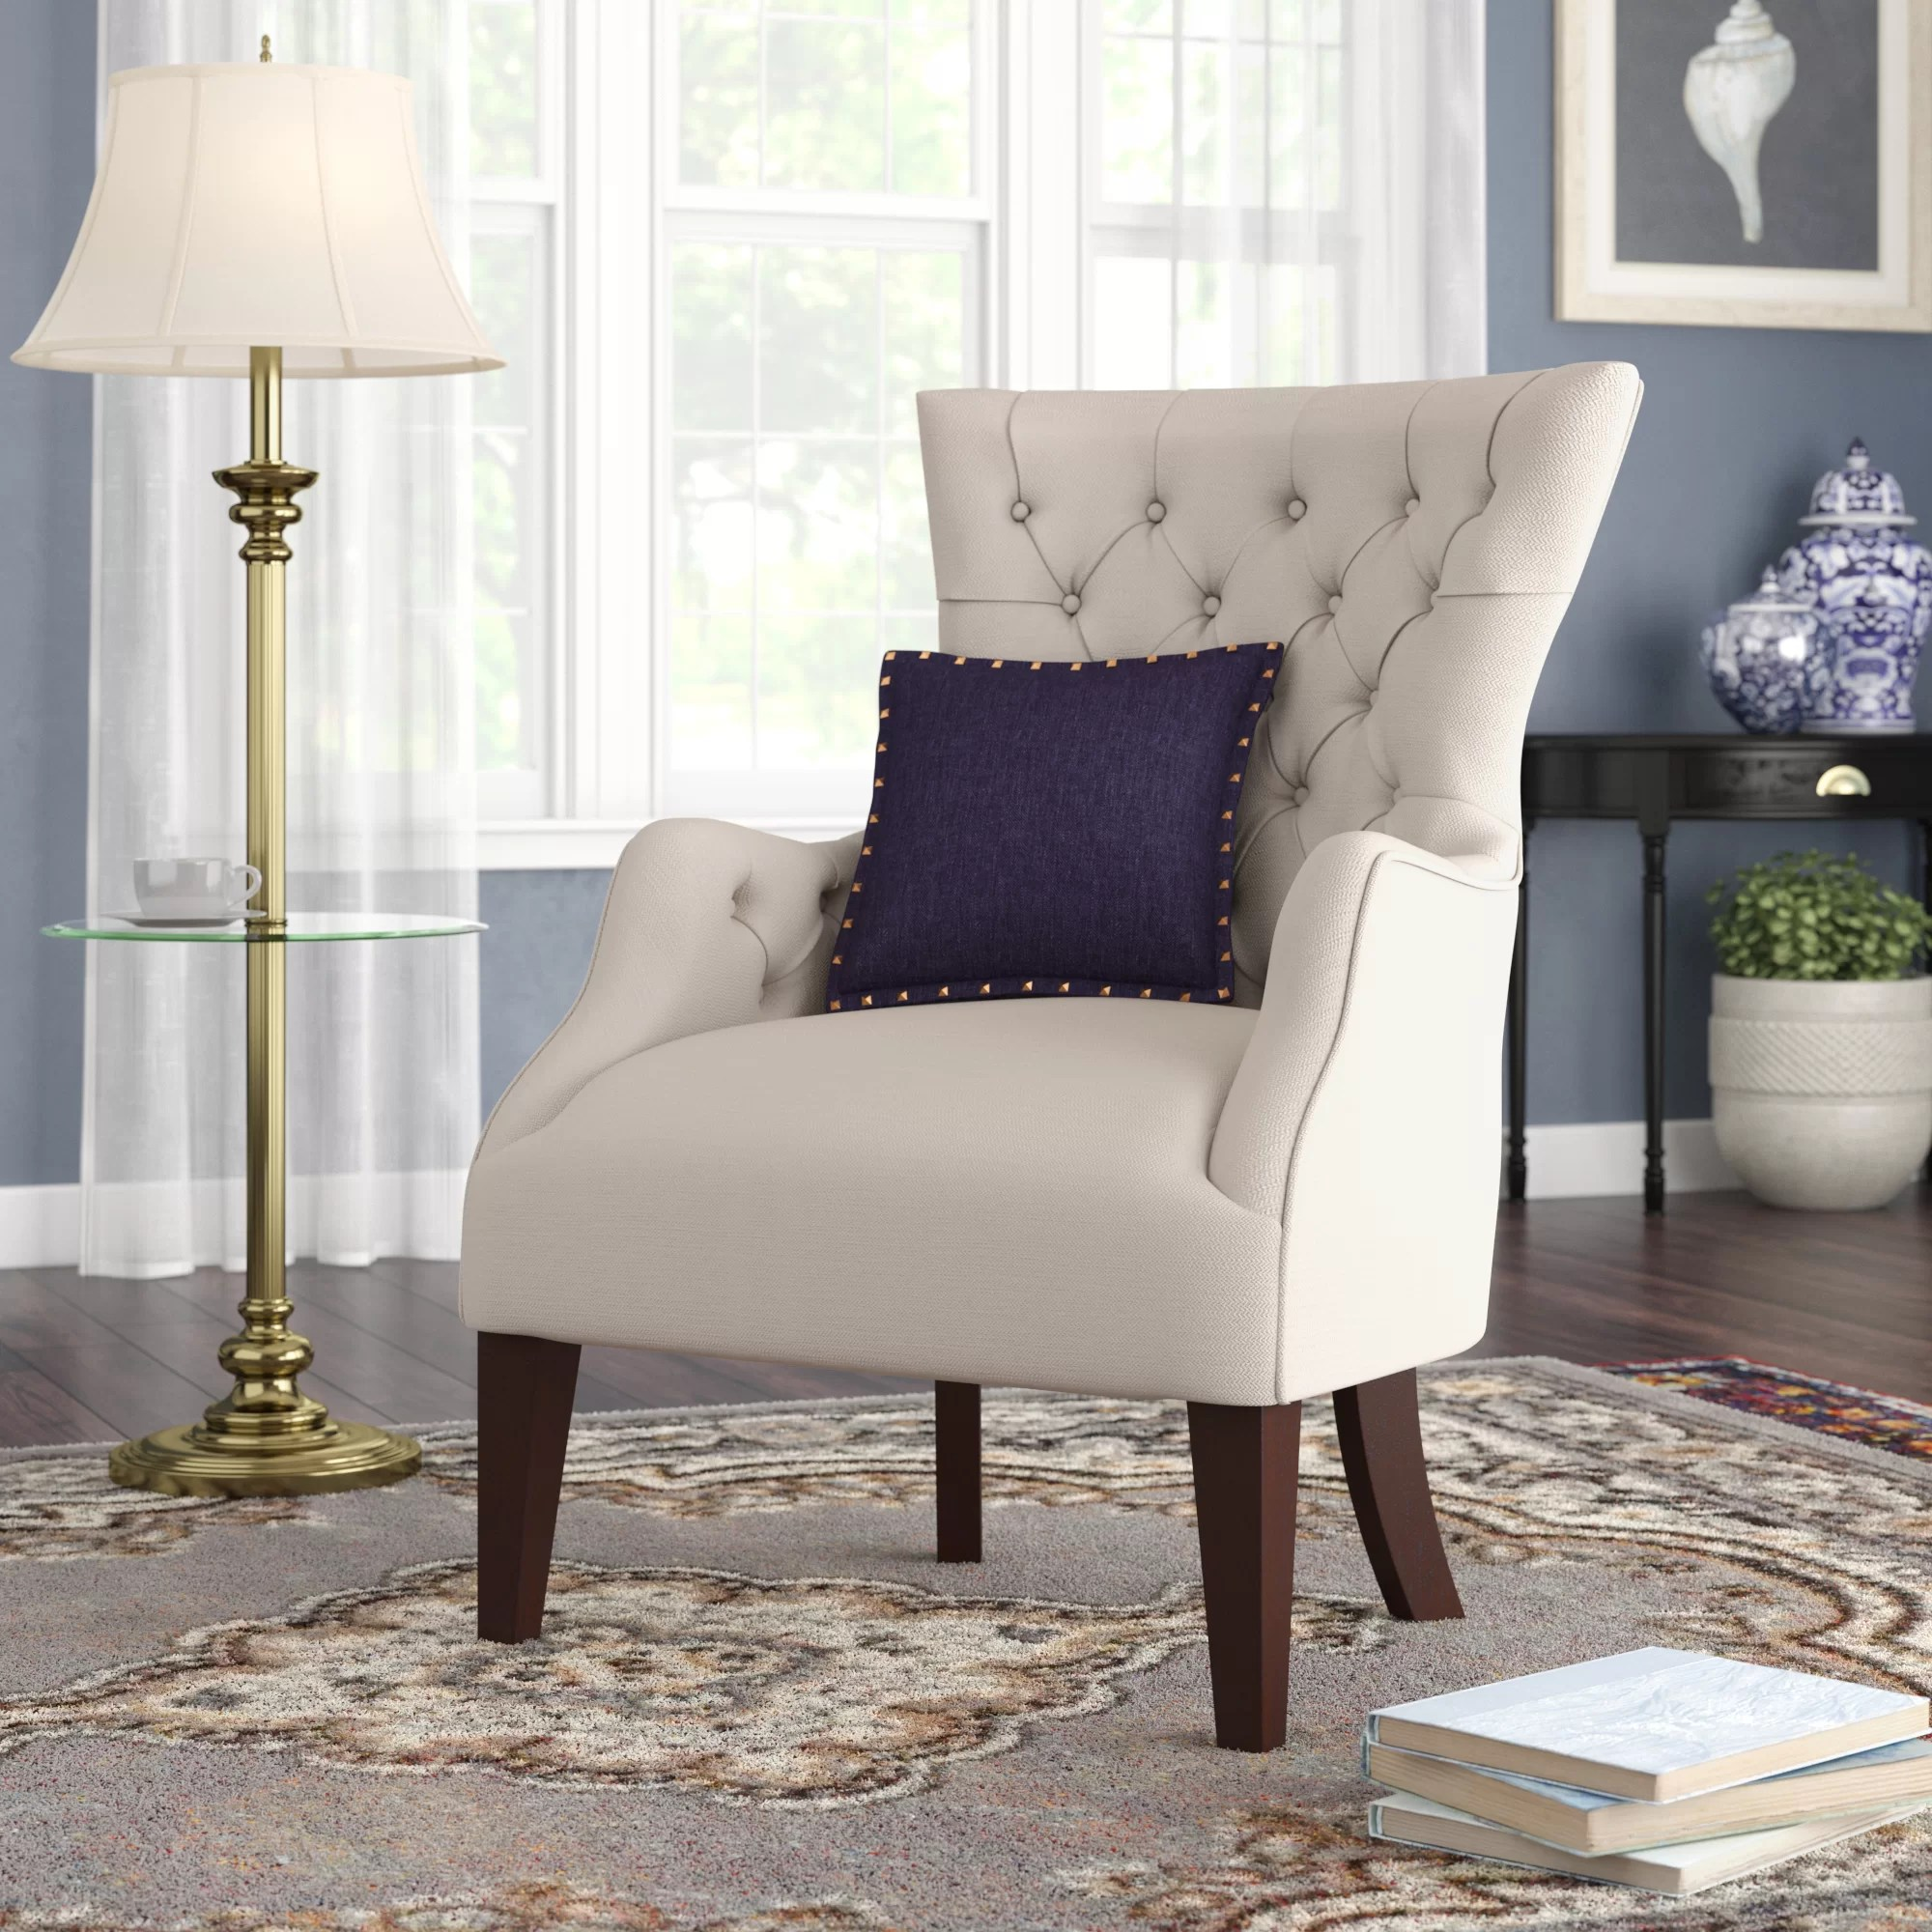 Wingback Tufted Chair Steelton Button Tufted Wingback Chair